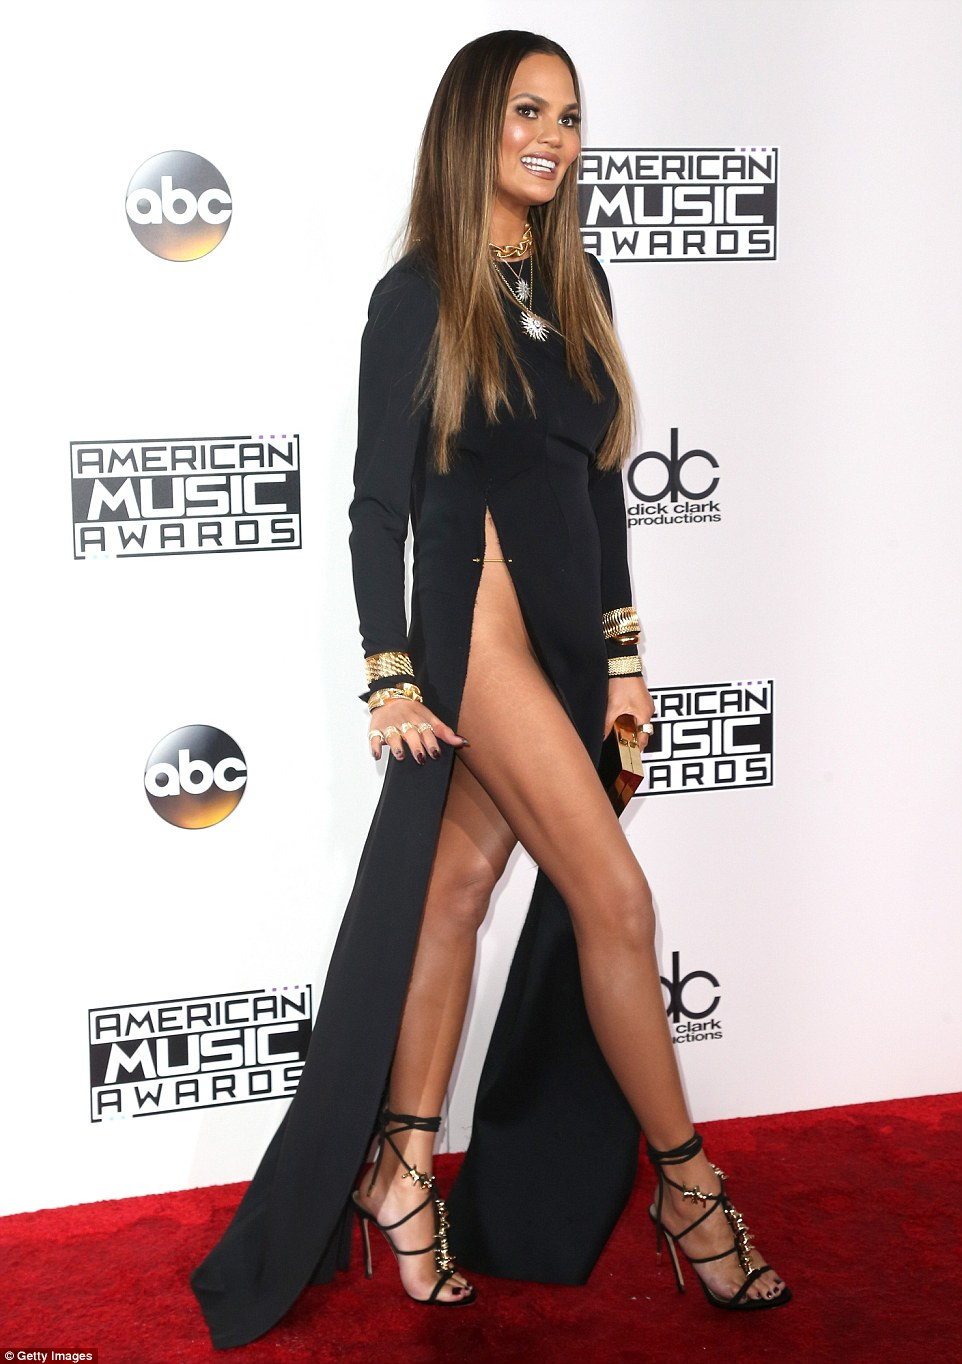 So revealing! Chrissy Teigen looked leggy in a black gown with impossibly high slit